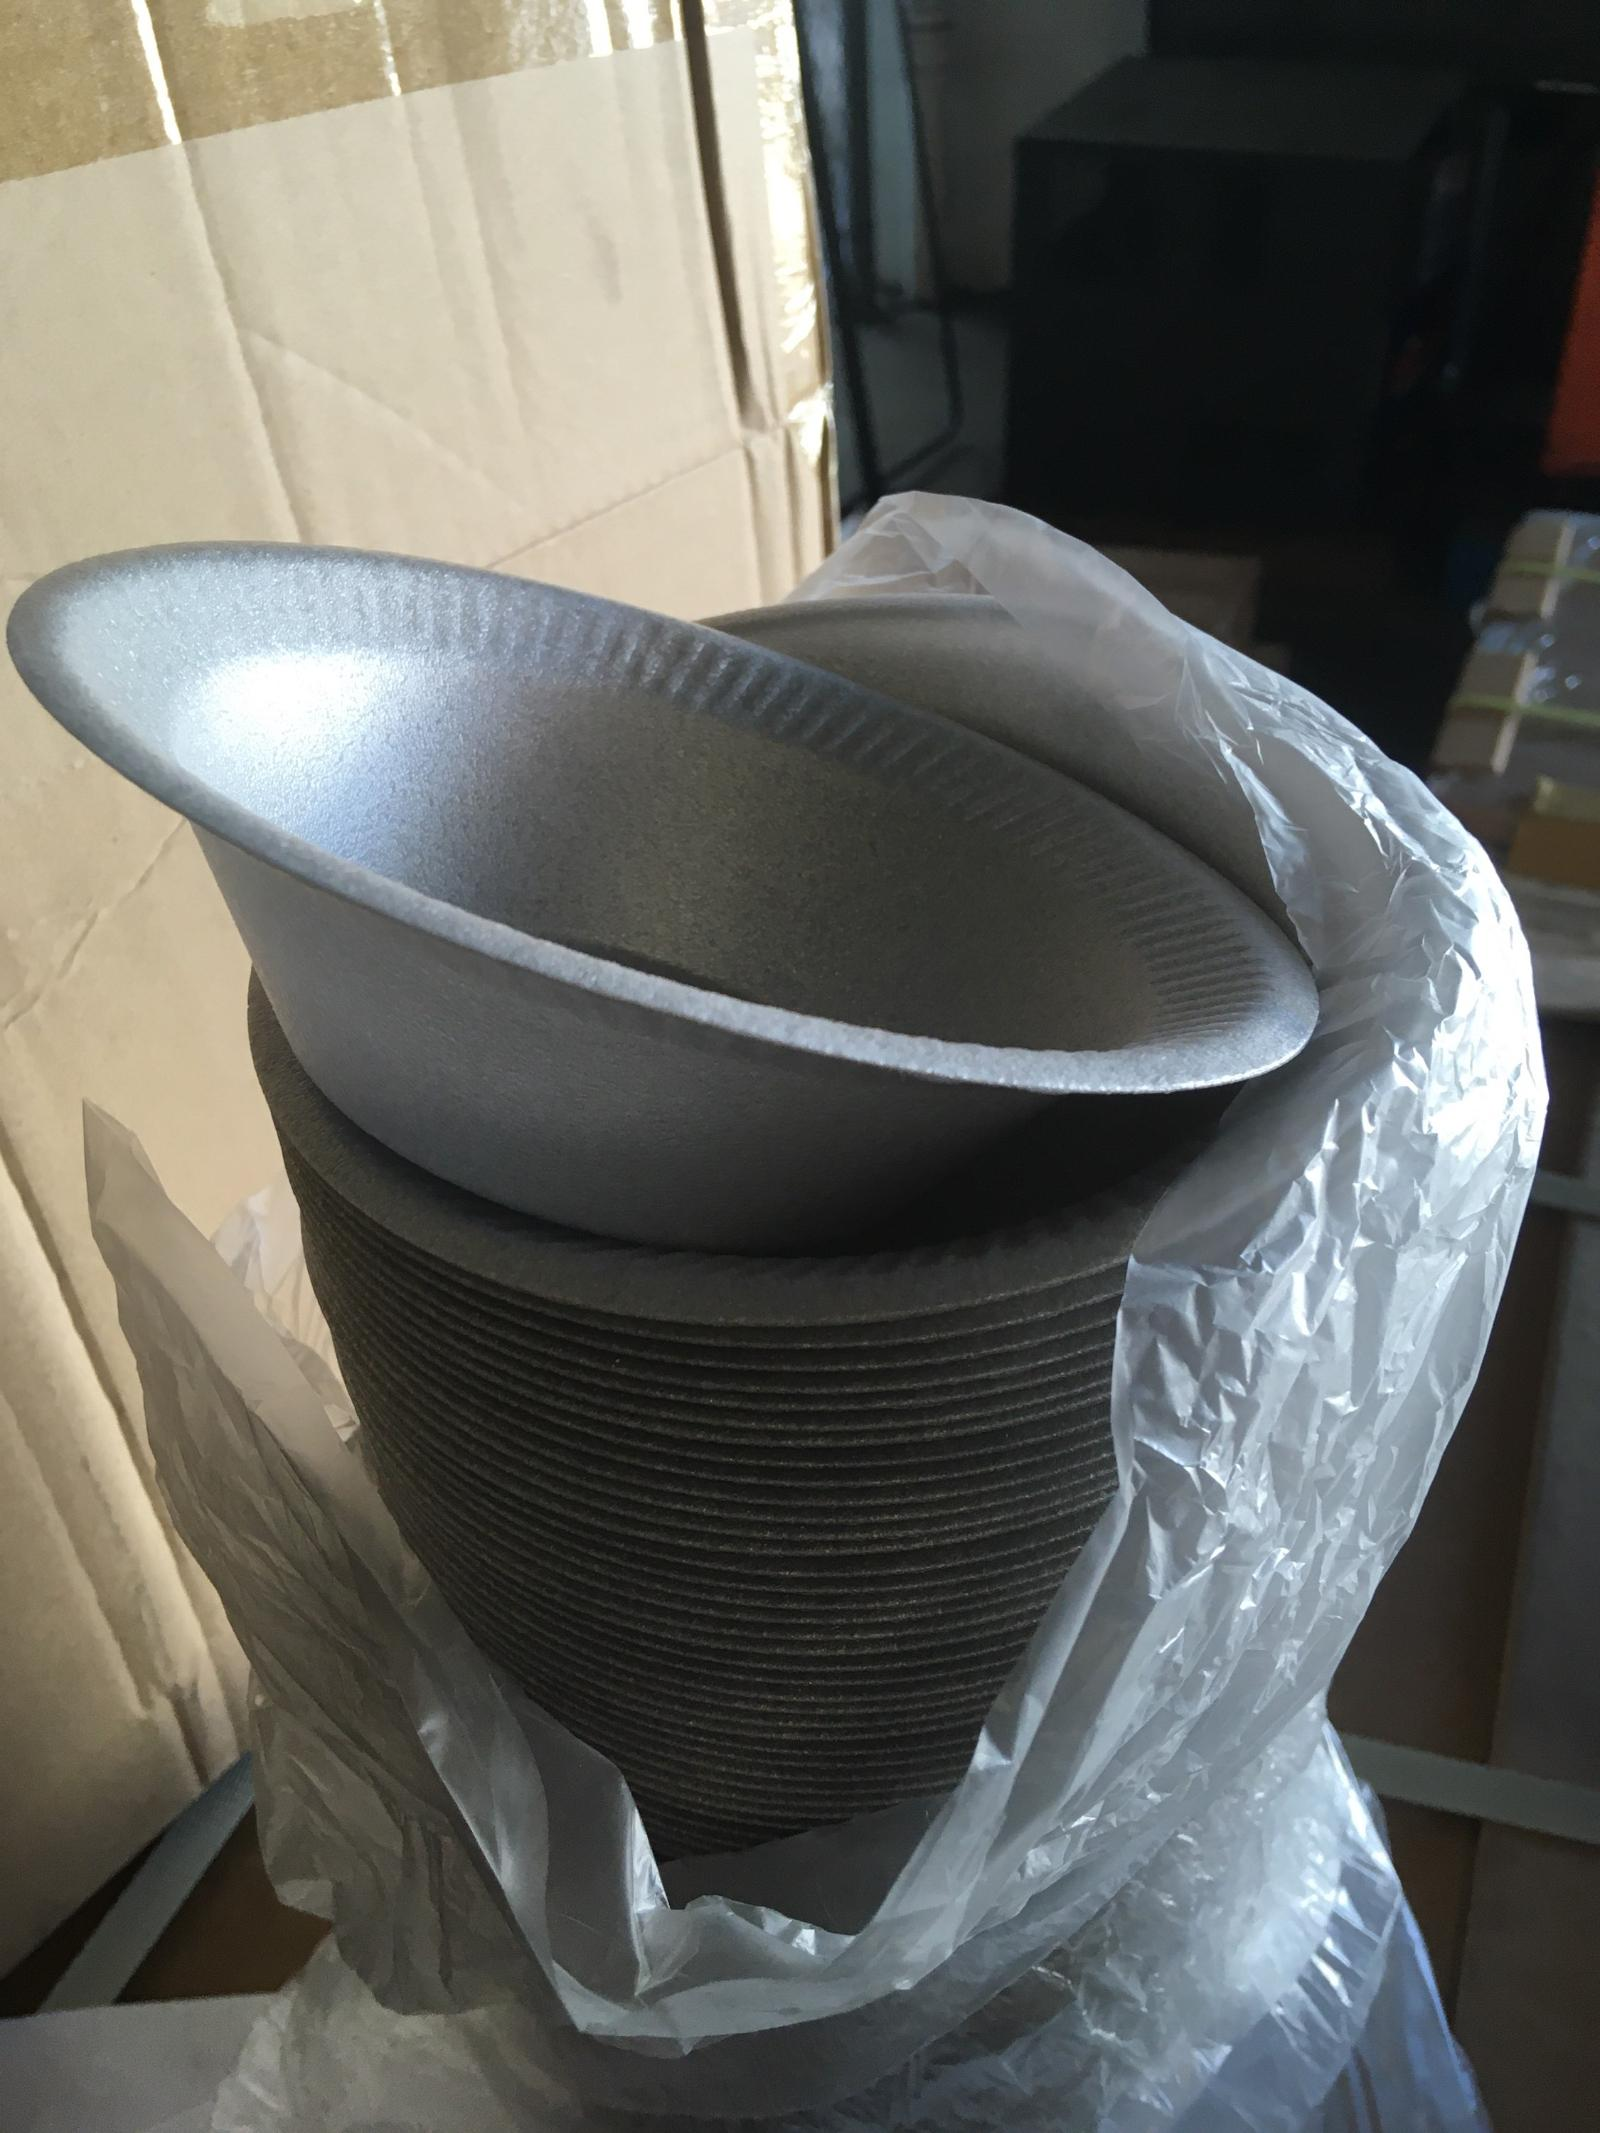 Bowls - Made in Korea